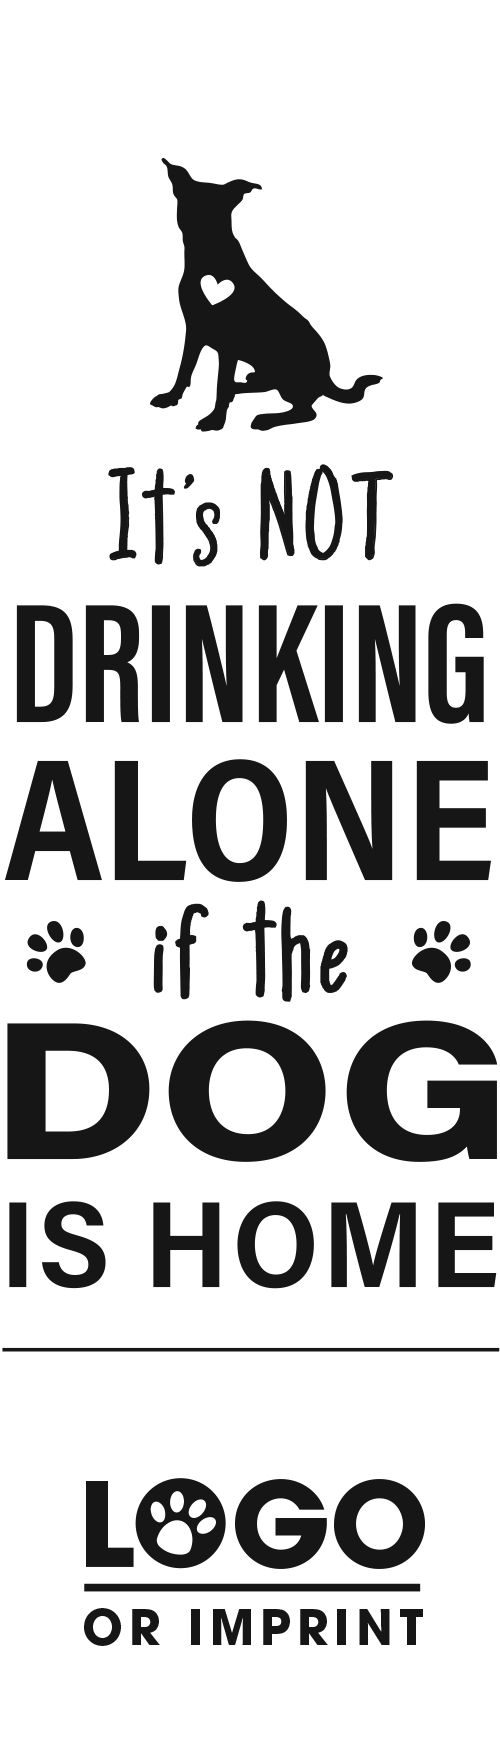 Not Drinking Alone-DOG thumbnail